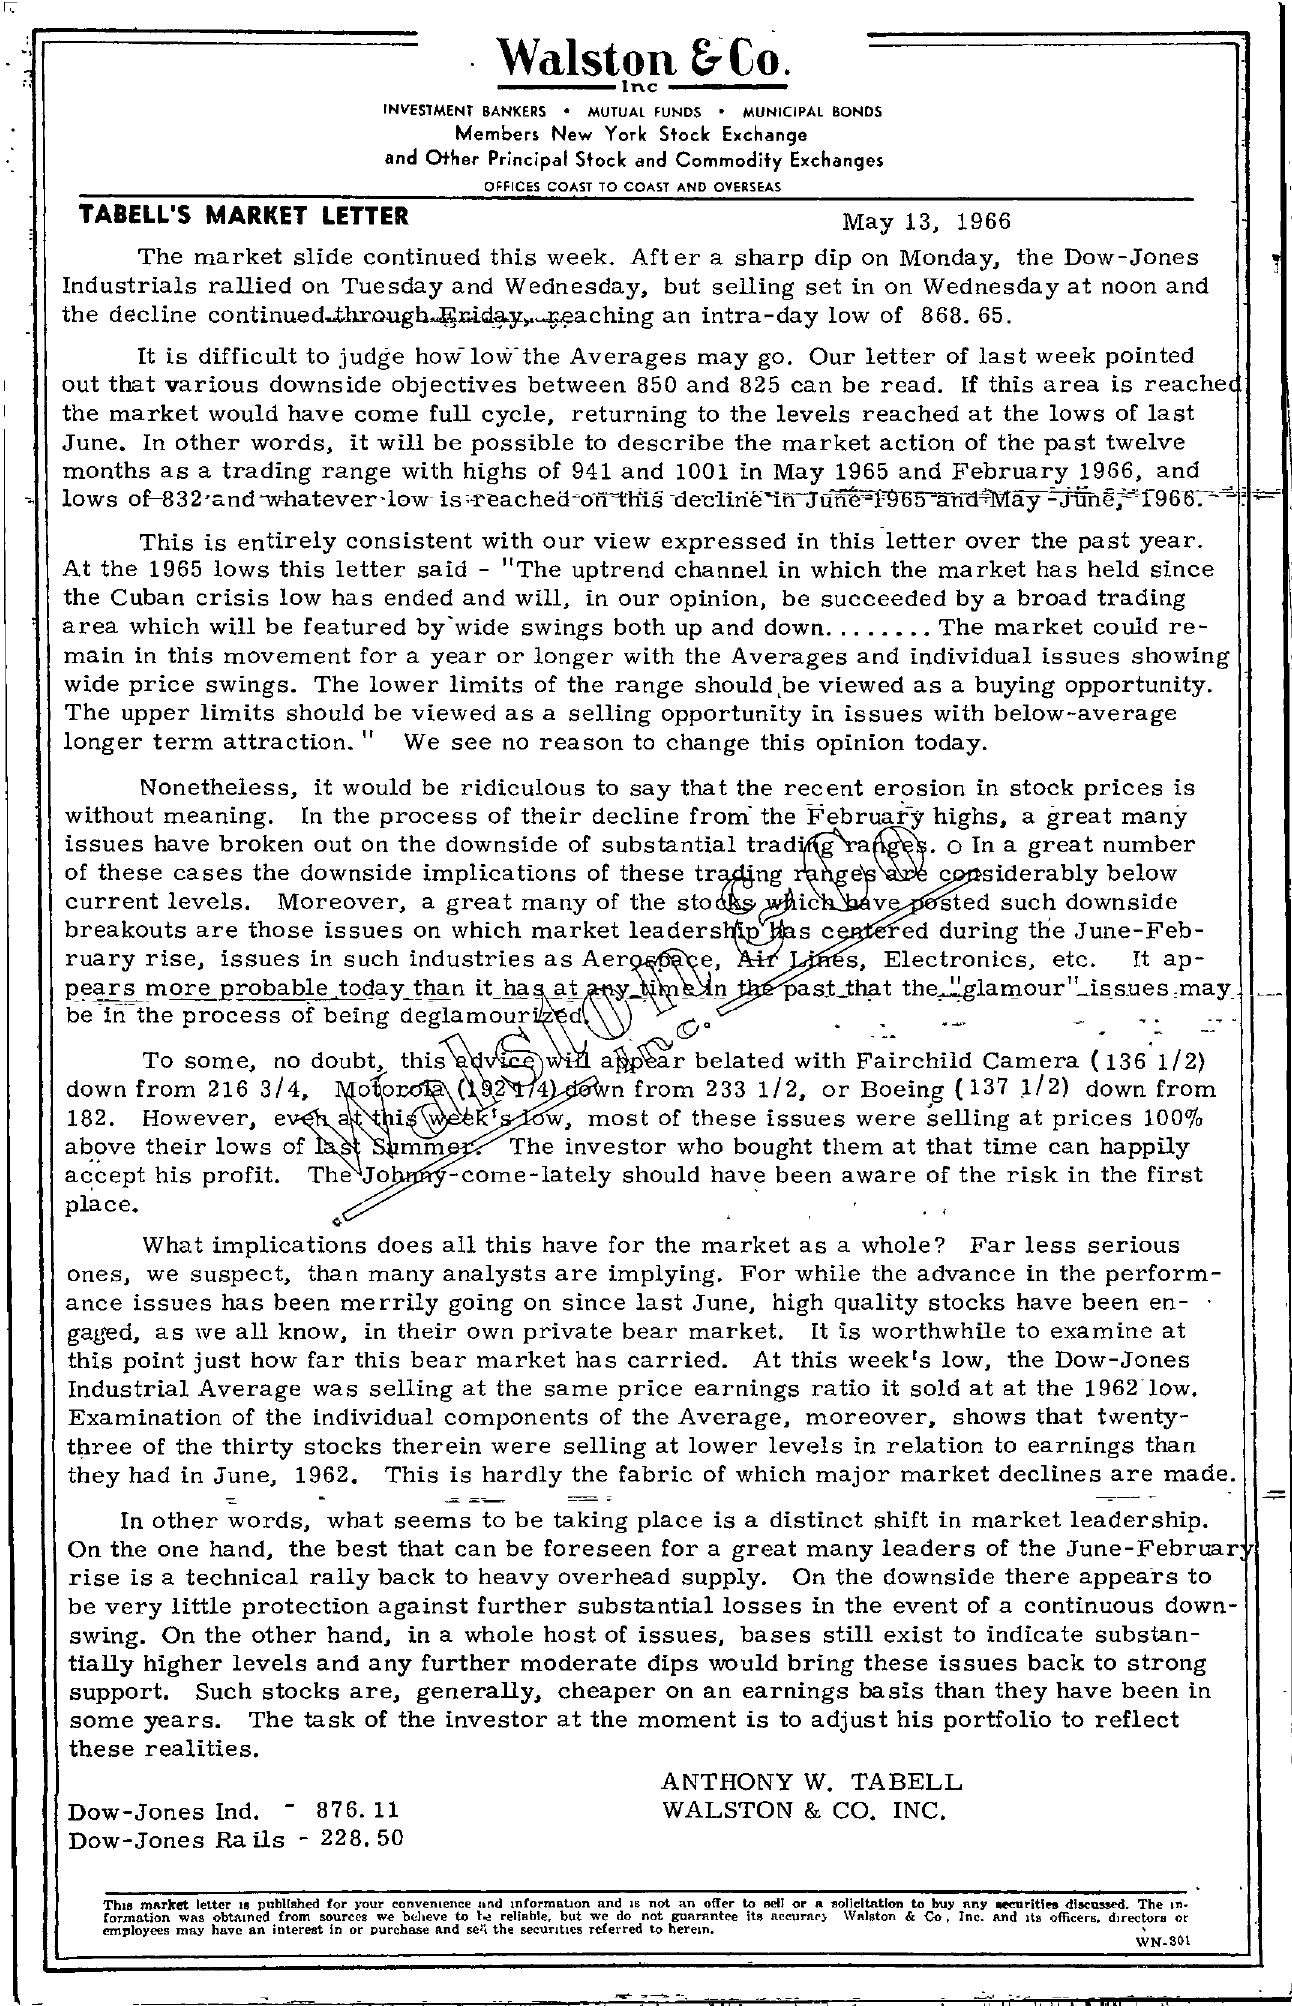 Tabell's Market Letter - May 13, 1966